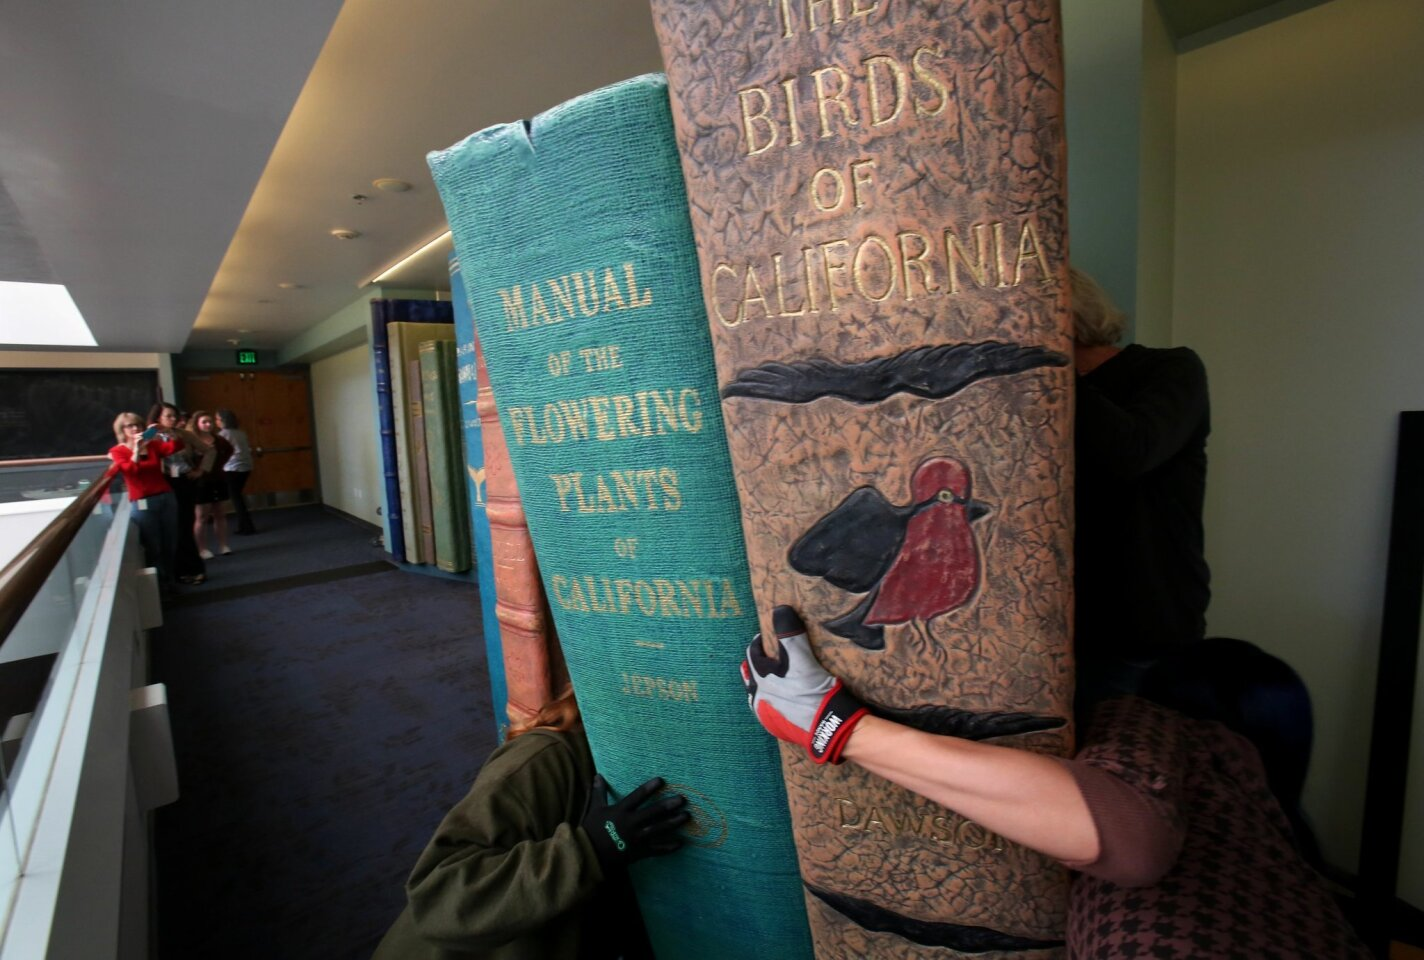 Rare books exhibit installed at the NAT